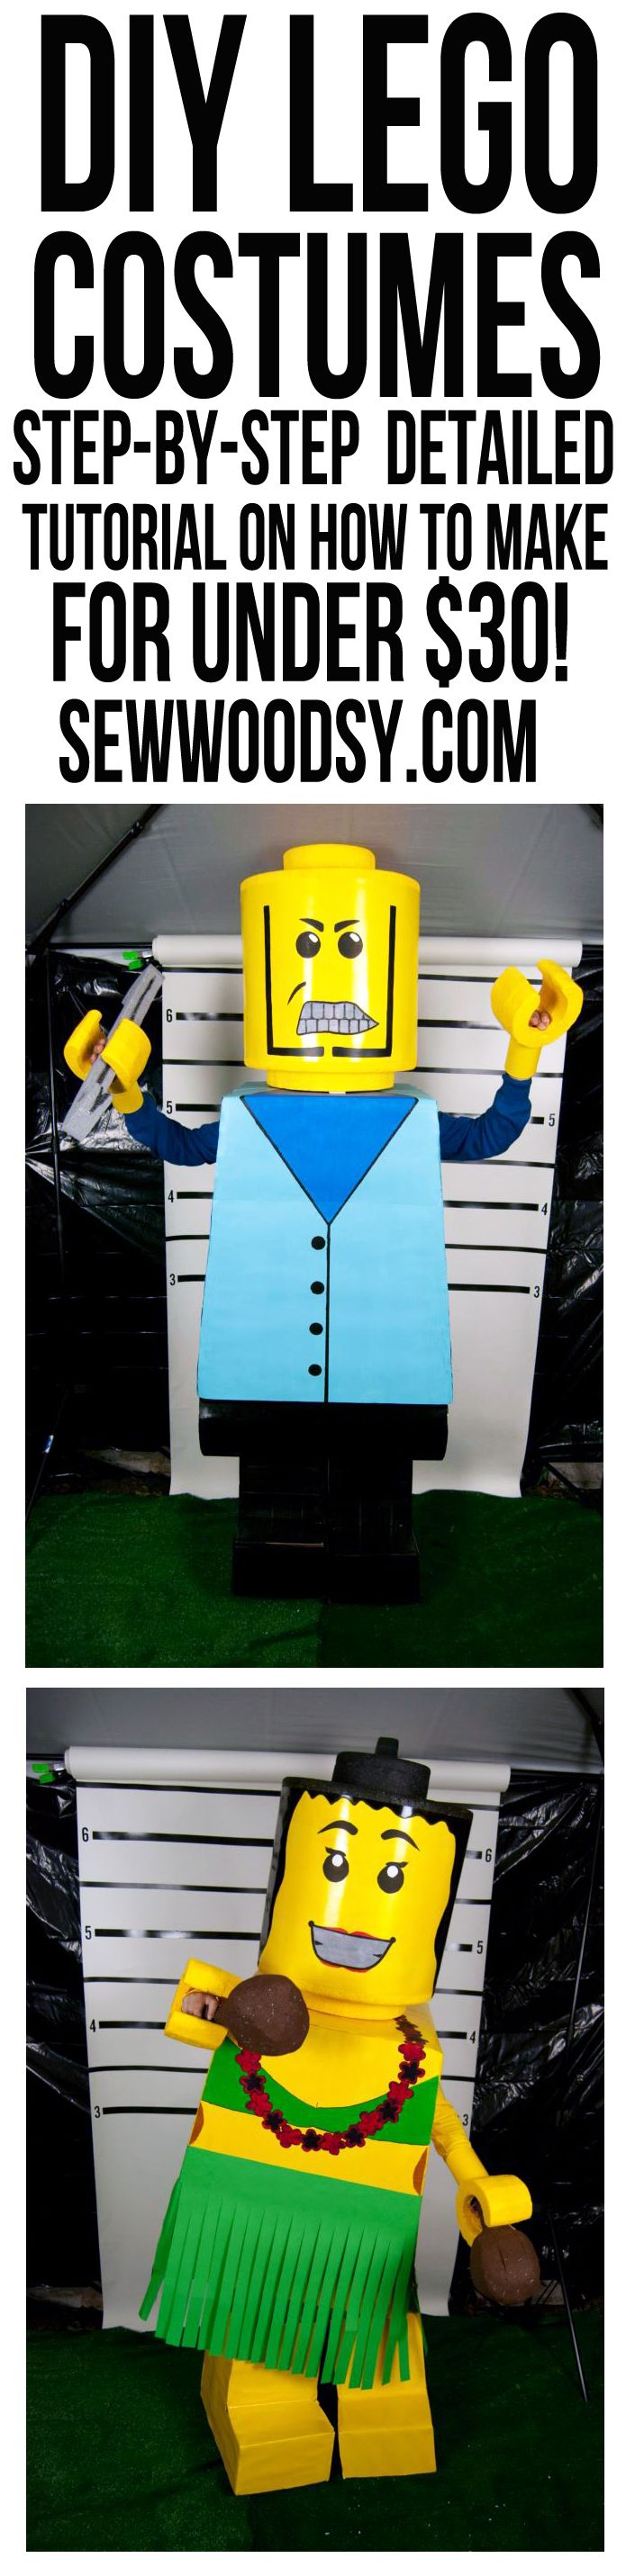 DIY Lego Costumes from SewWoodsy.com #Halloween #Costume #DIY